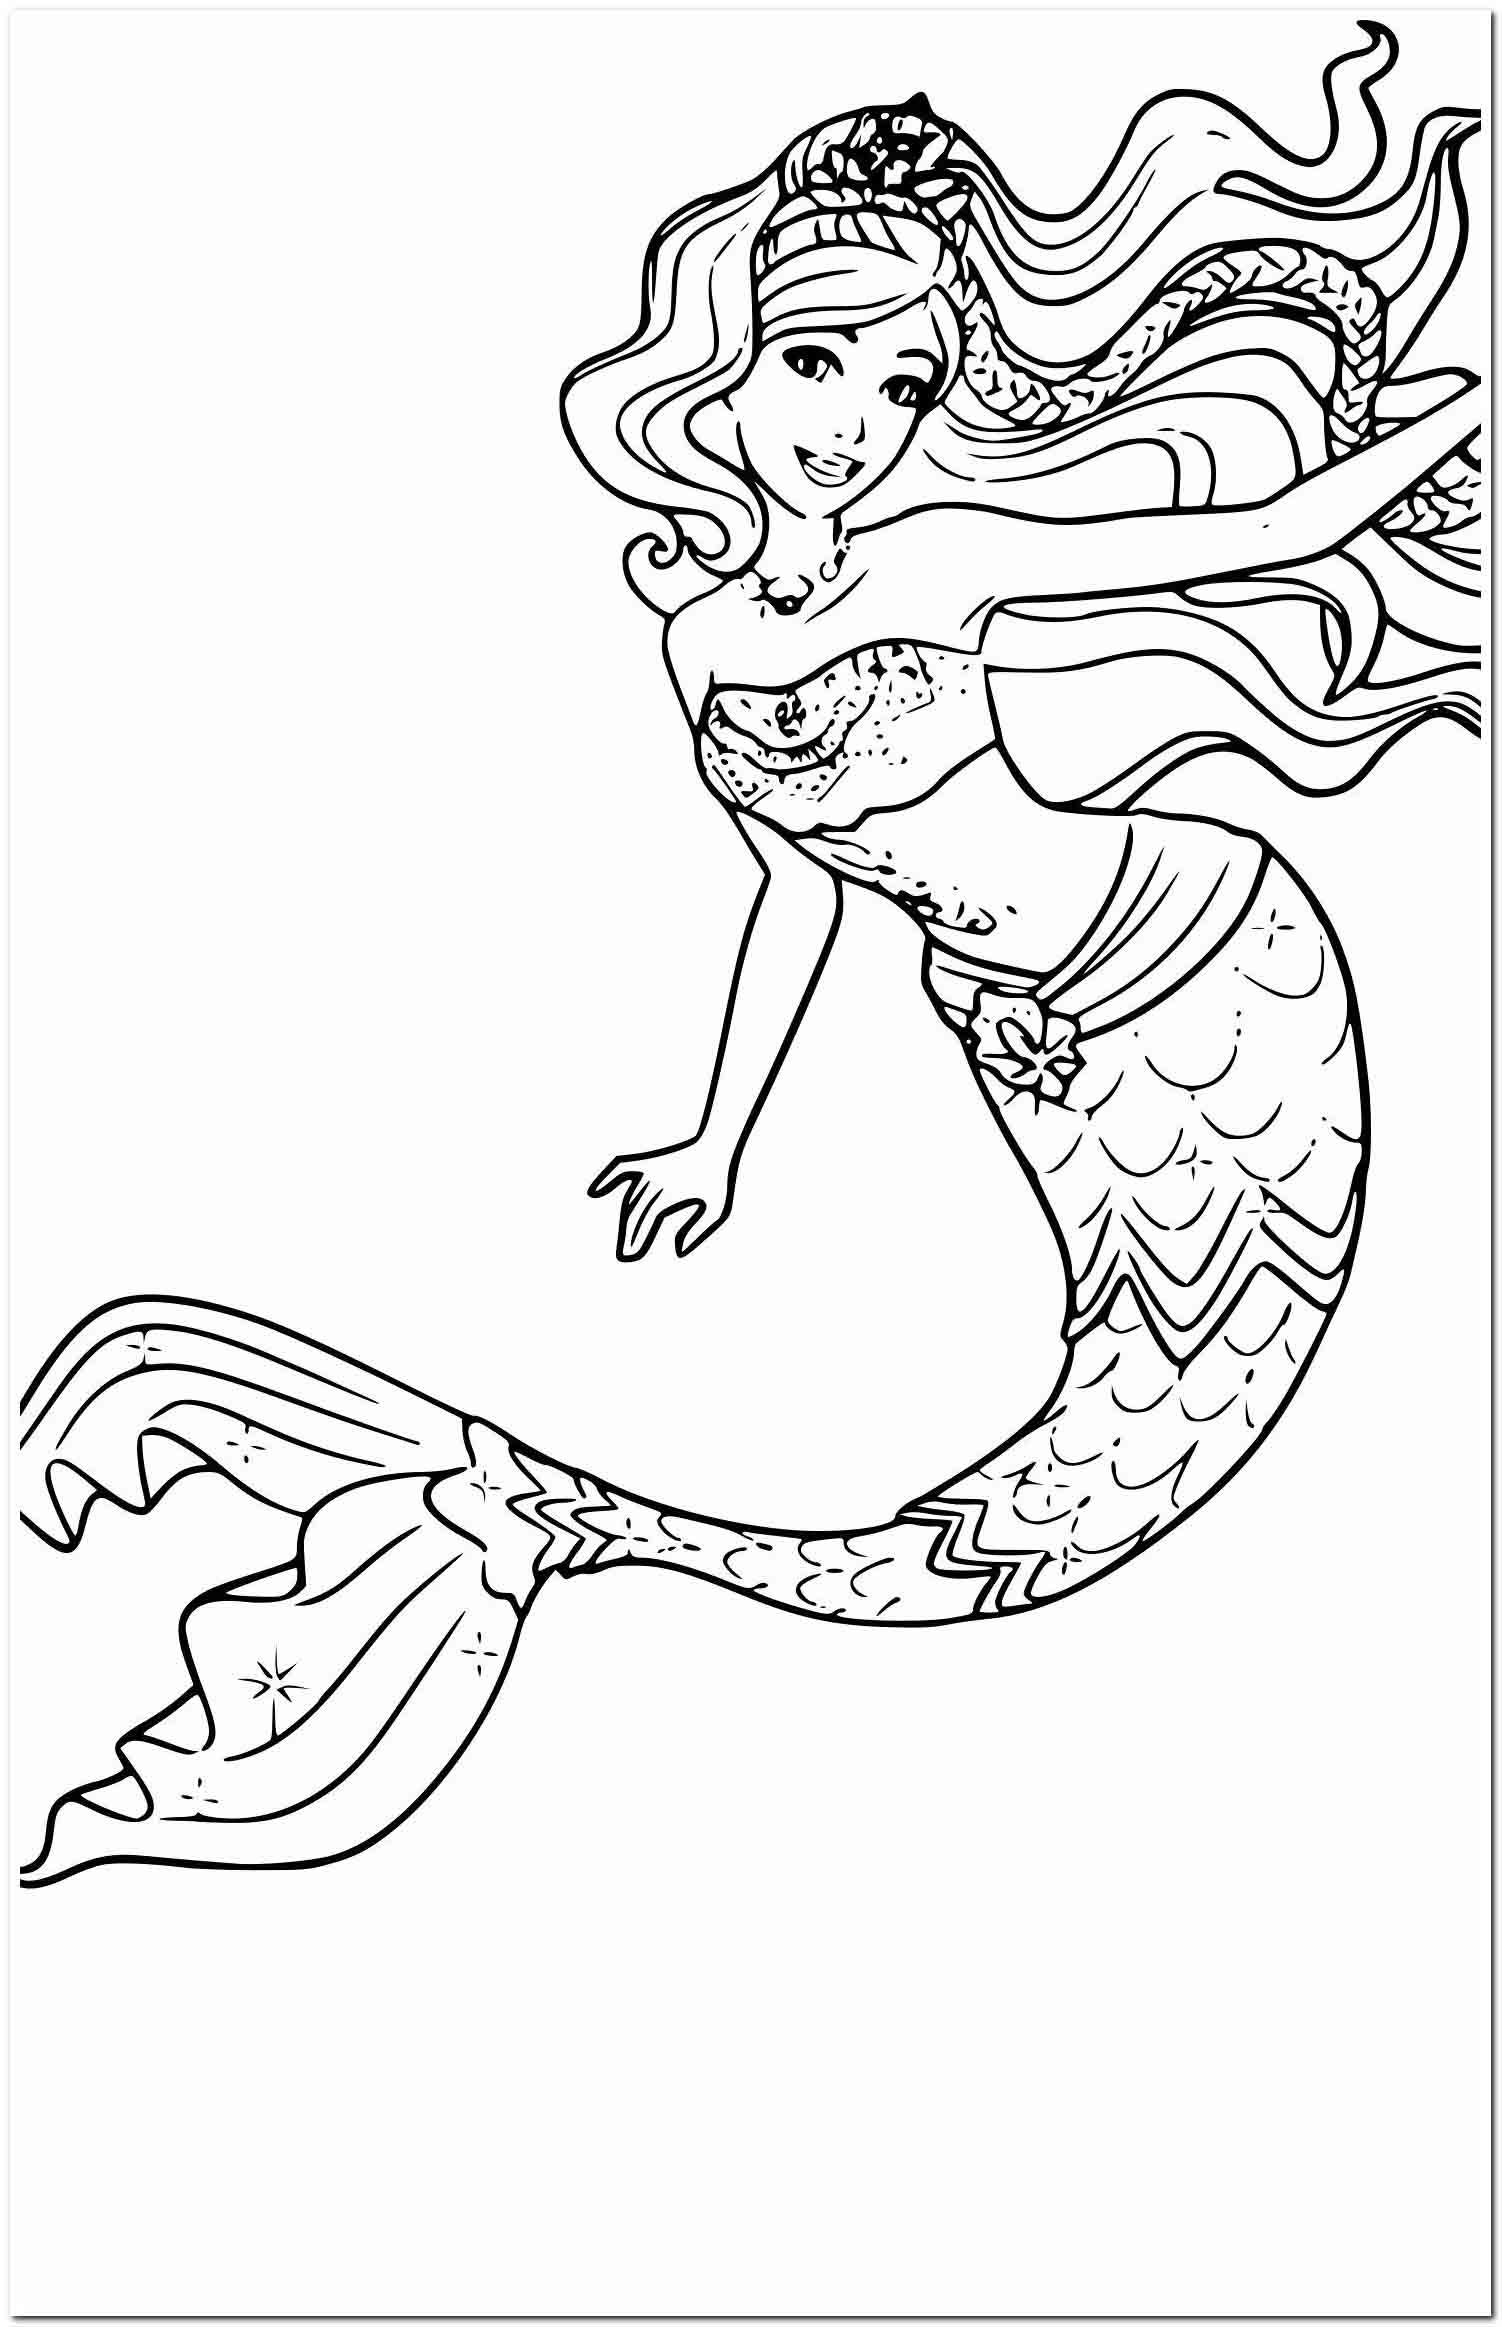 46 Coloring Pages Advance Coloring Pages Mermaid Coloring Book Mermaid Coloring Pages Barbie Coloring Pages